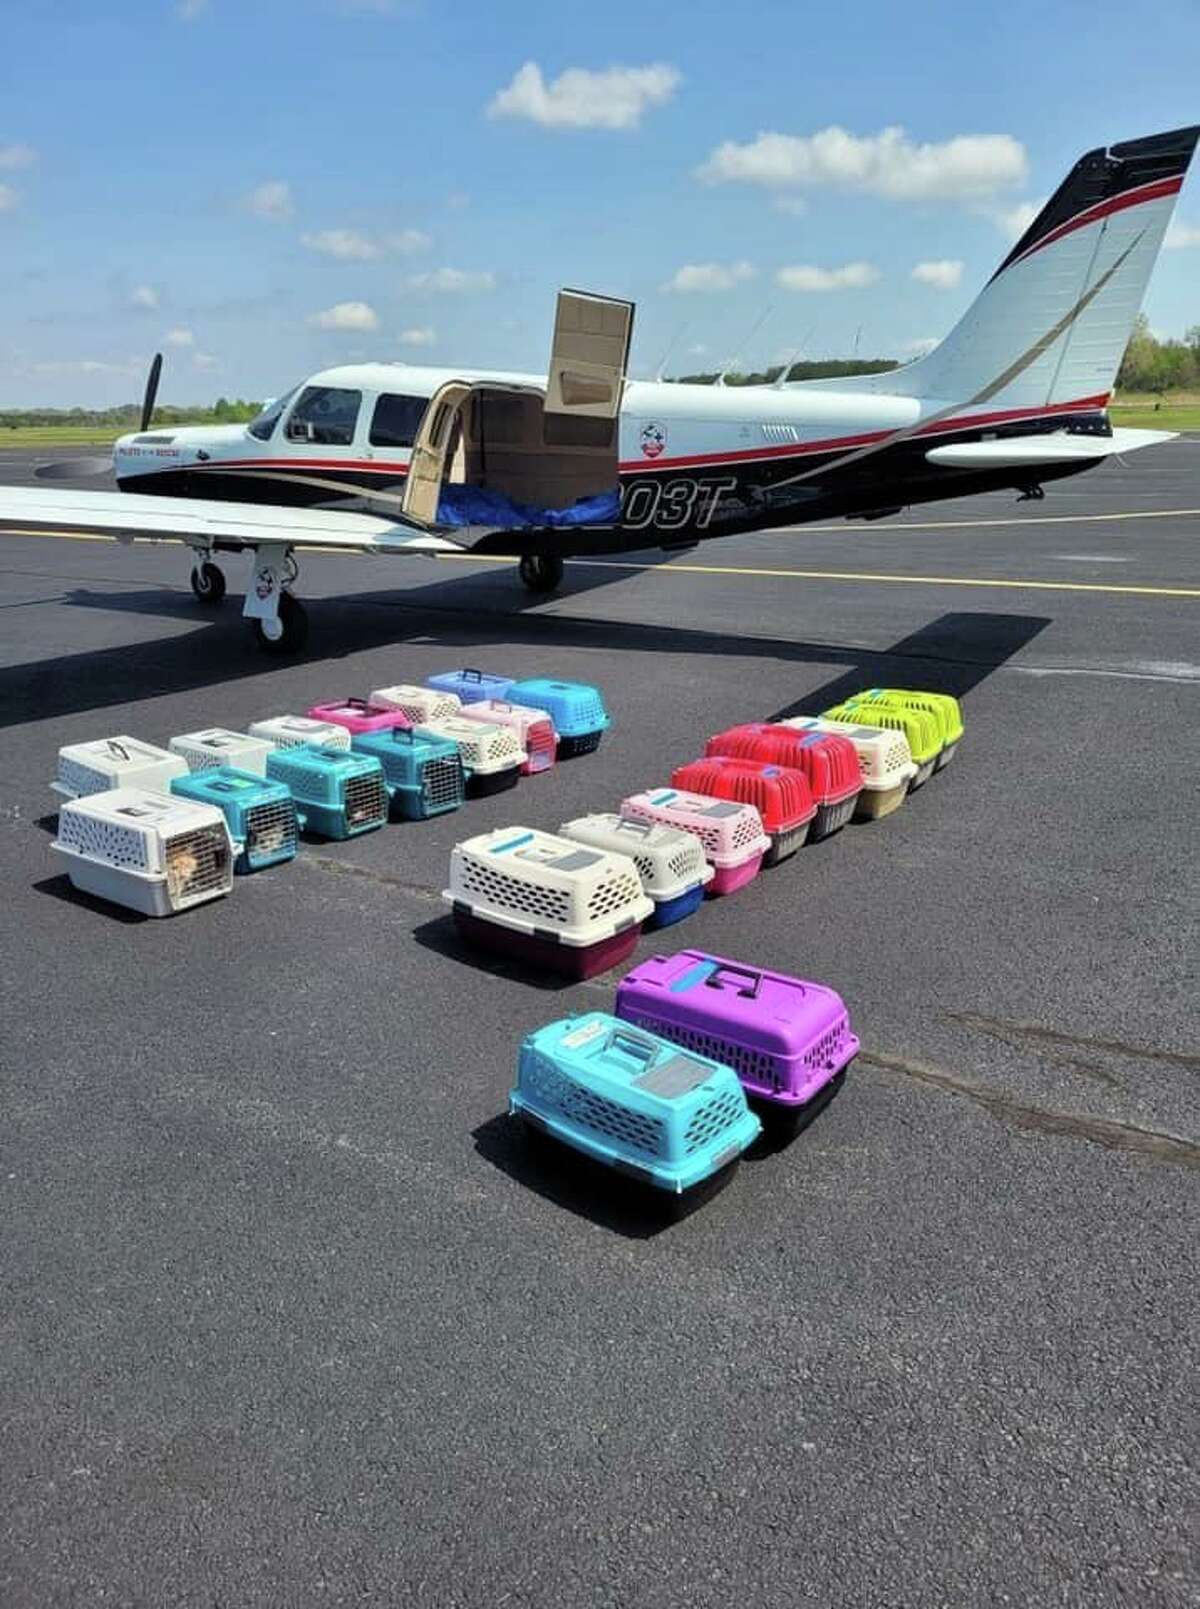 The 33 rescued cats were flown into Danbury Municipal Airport on Saturday and then were driven to New Hampshire for adoption.